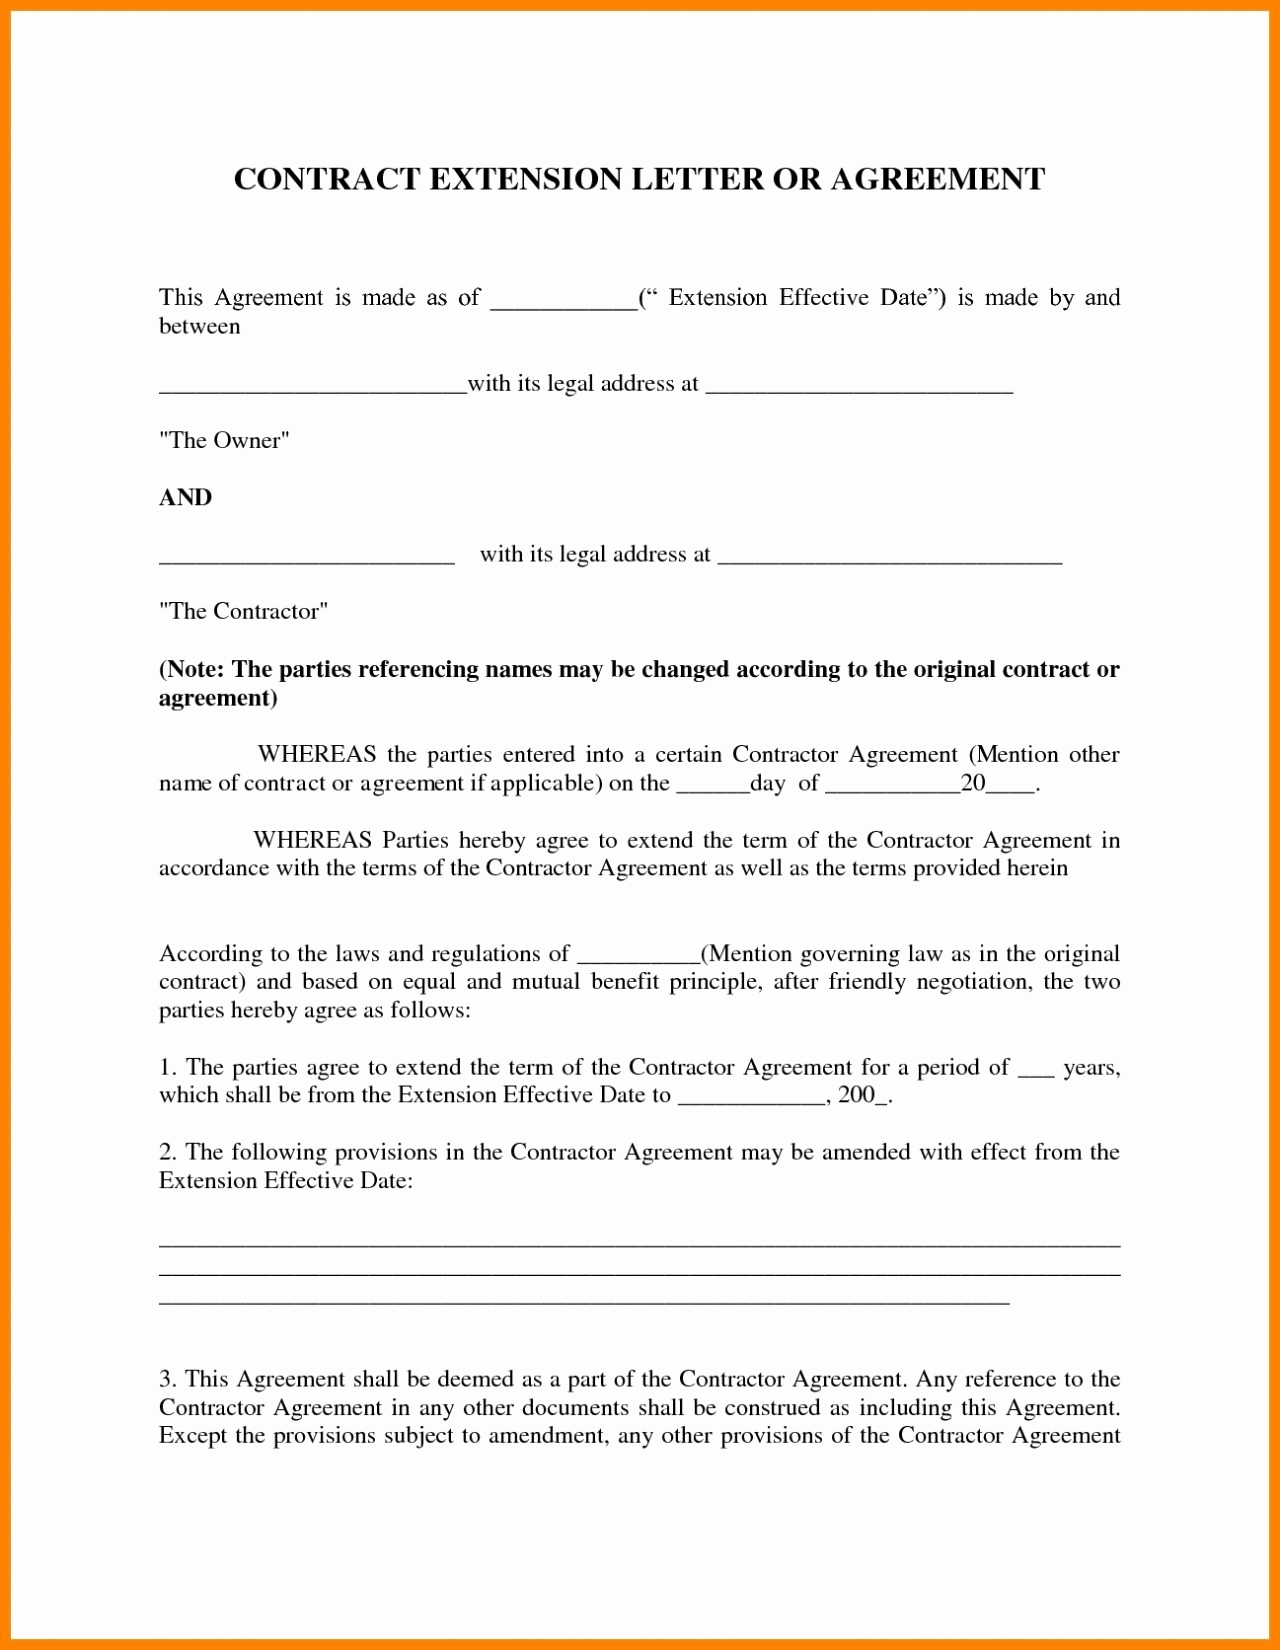 parent letter to child template example-Casual Employment Contract Template 31 50 Elegant Free Parent Child Contract Templates Documents Ideas Inspiration for 11-d